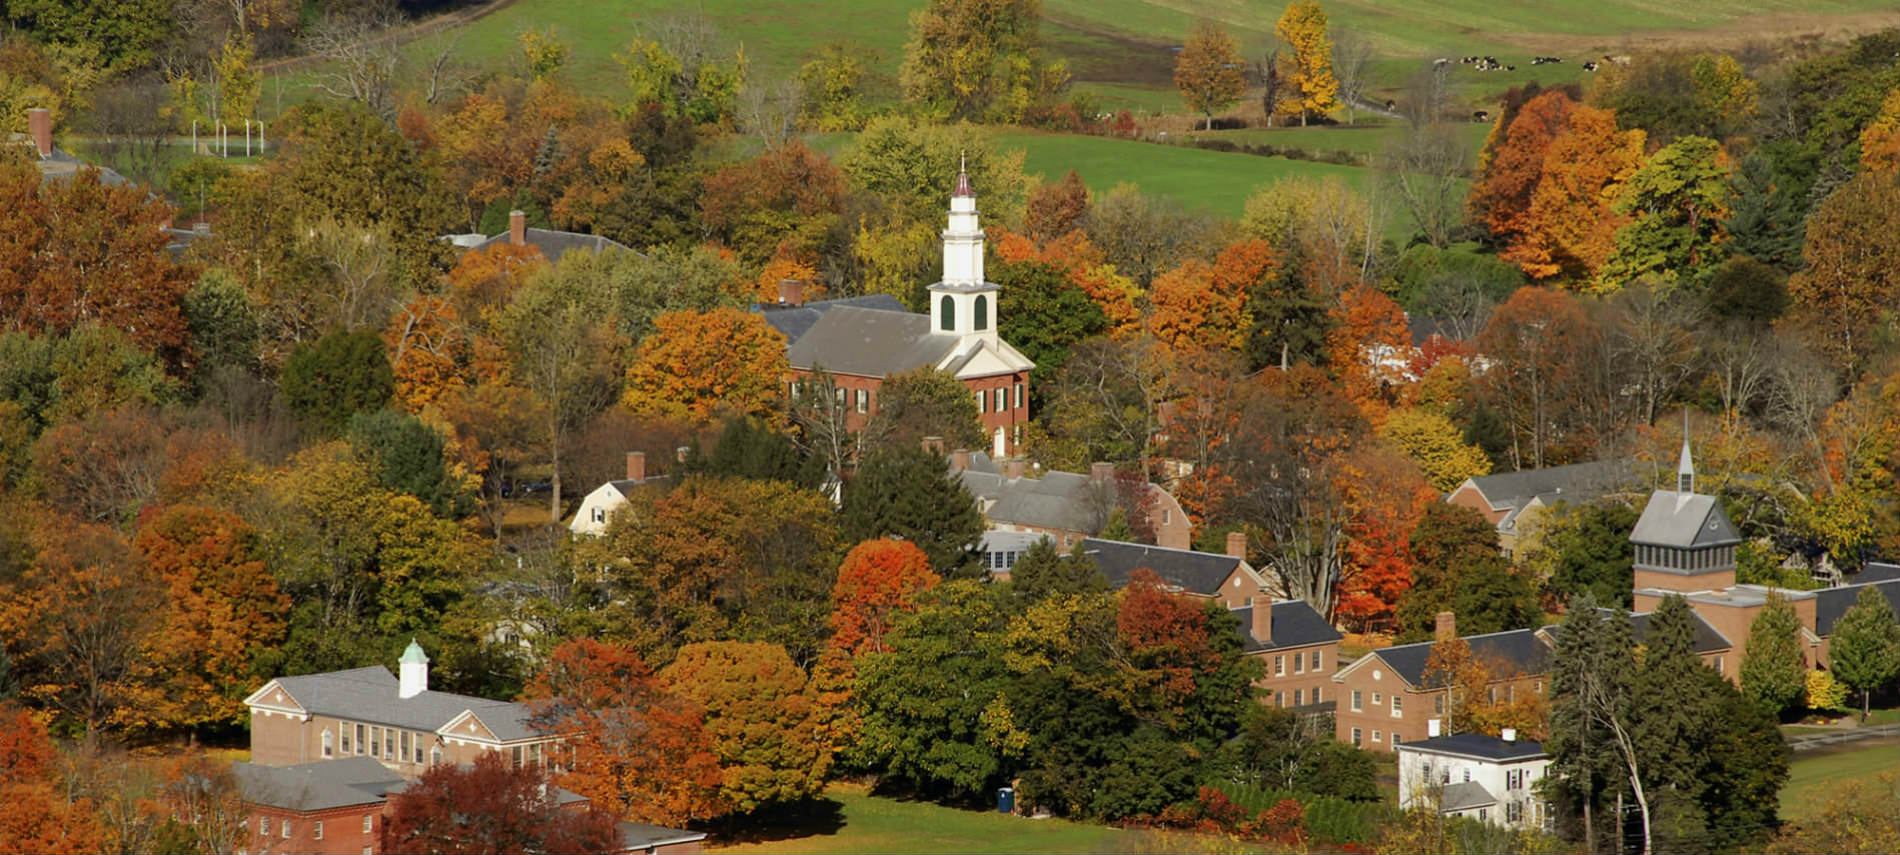 Historical white church with a tall steeple surrounded by homes and luxuriant fall foliage.